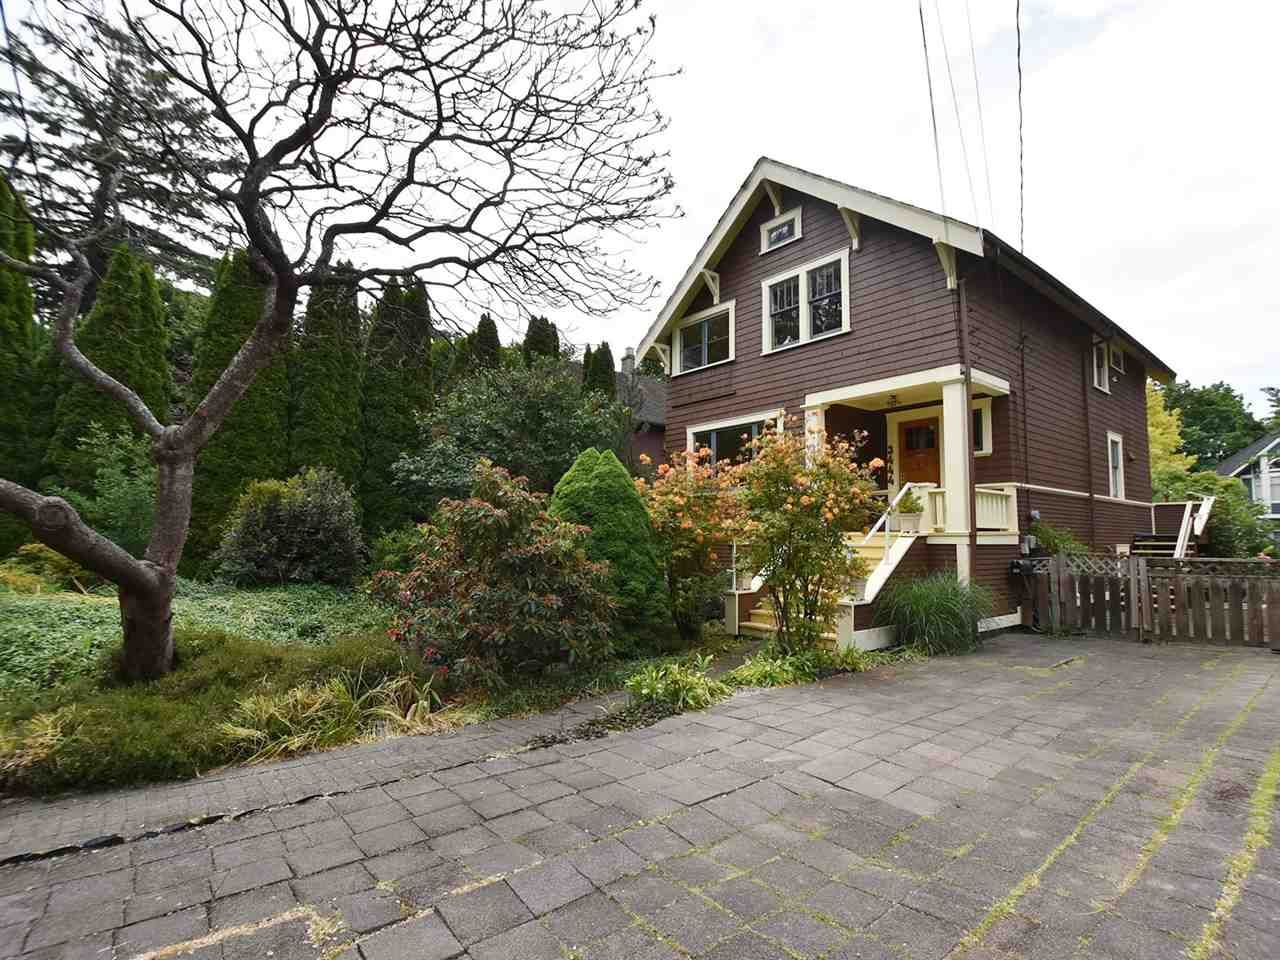 Main Photo: 3444 W 5TH Avenue in Vancouver: Kitsilano House for sale (Vancouver West)  : MLS®# R2071927